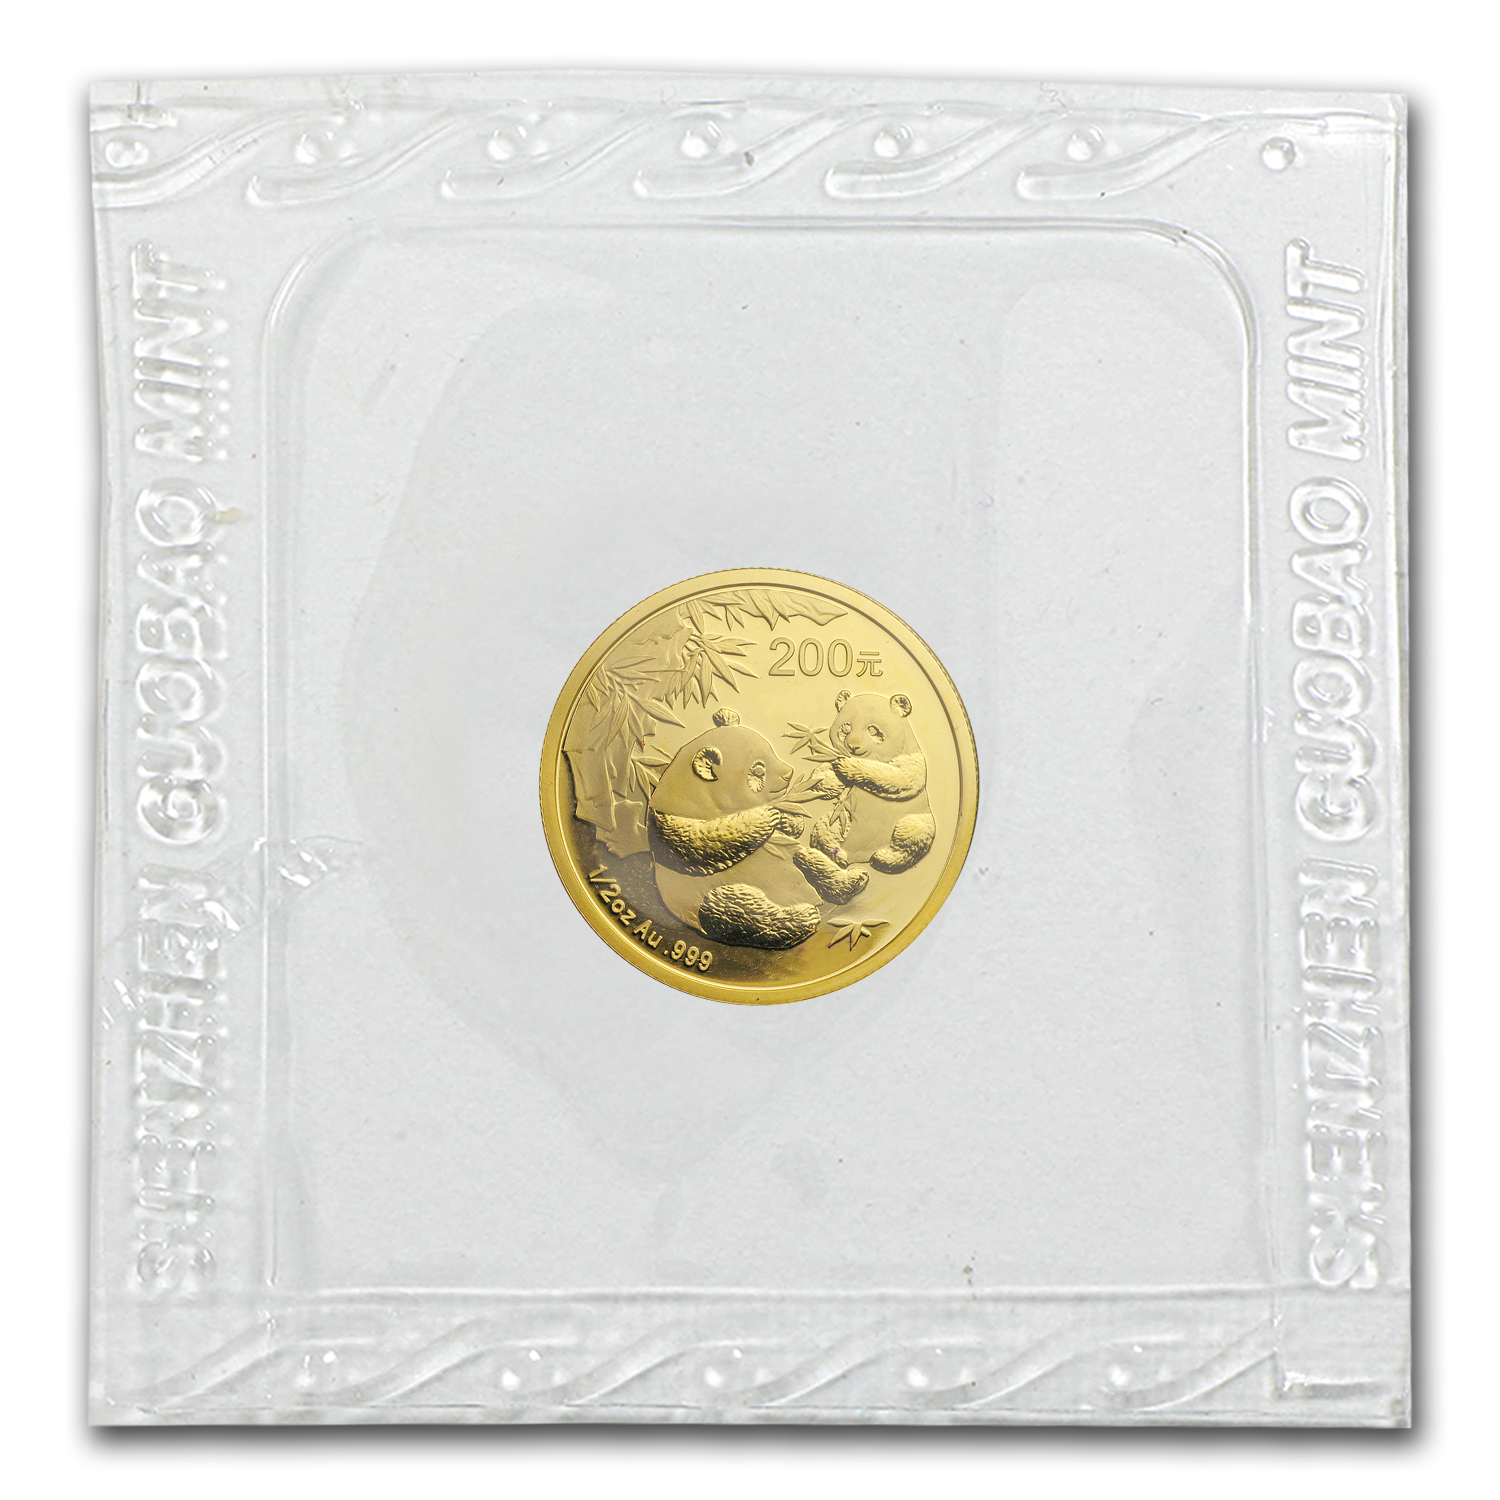 2006 China 1/2 oz Gold Panda BU (Sealed)